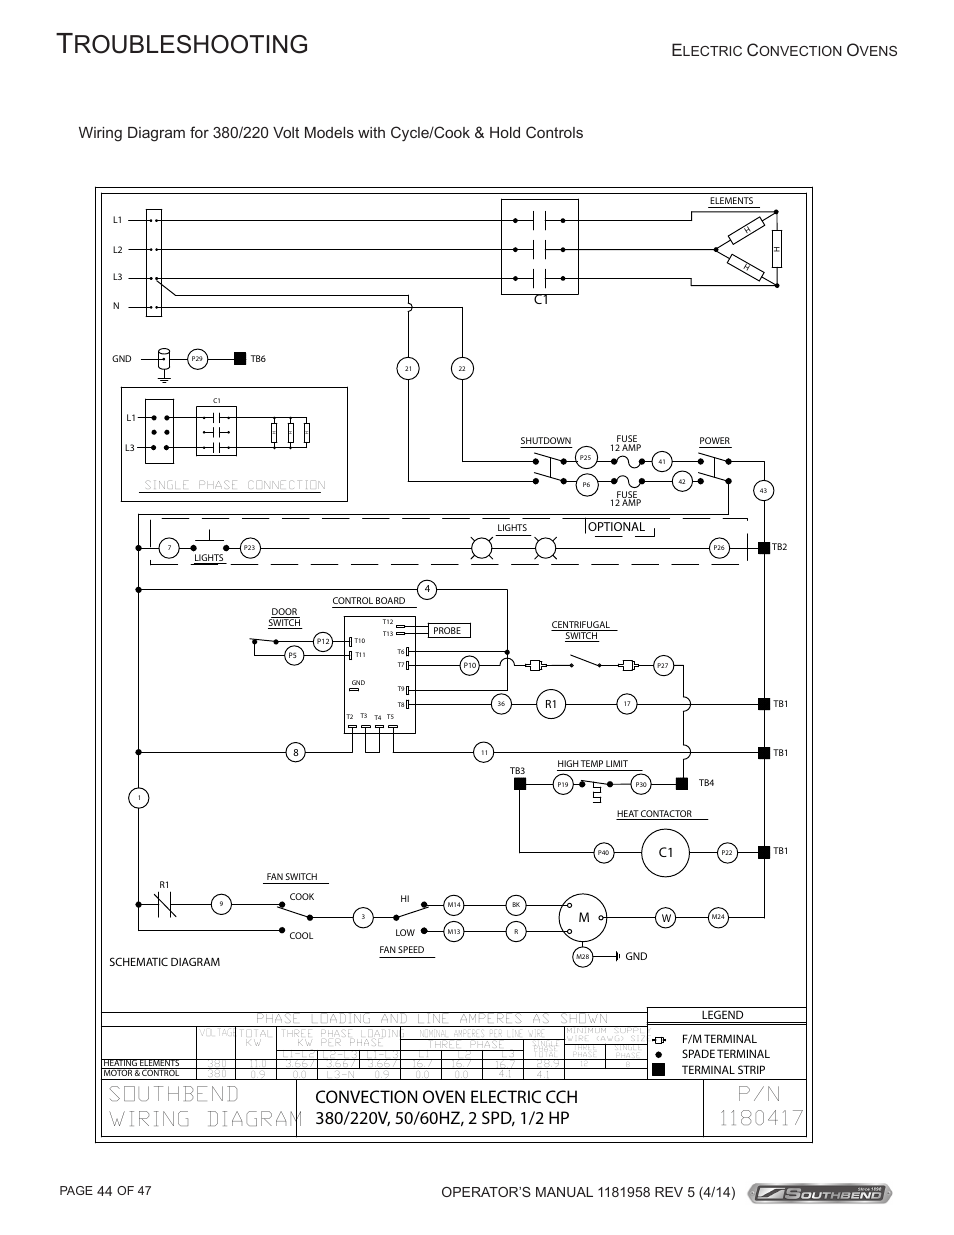 hight resolution of roubleshooting southbend wiring diagram convection oven electric cch southbend sl series user manual page 44 47